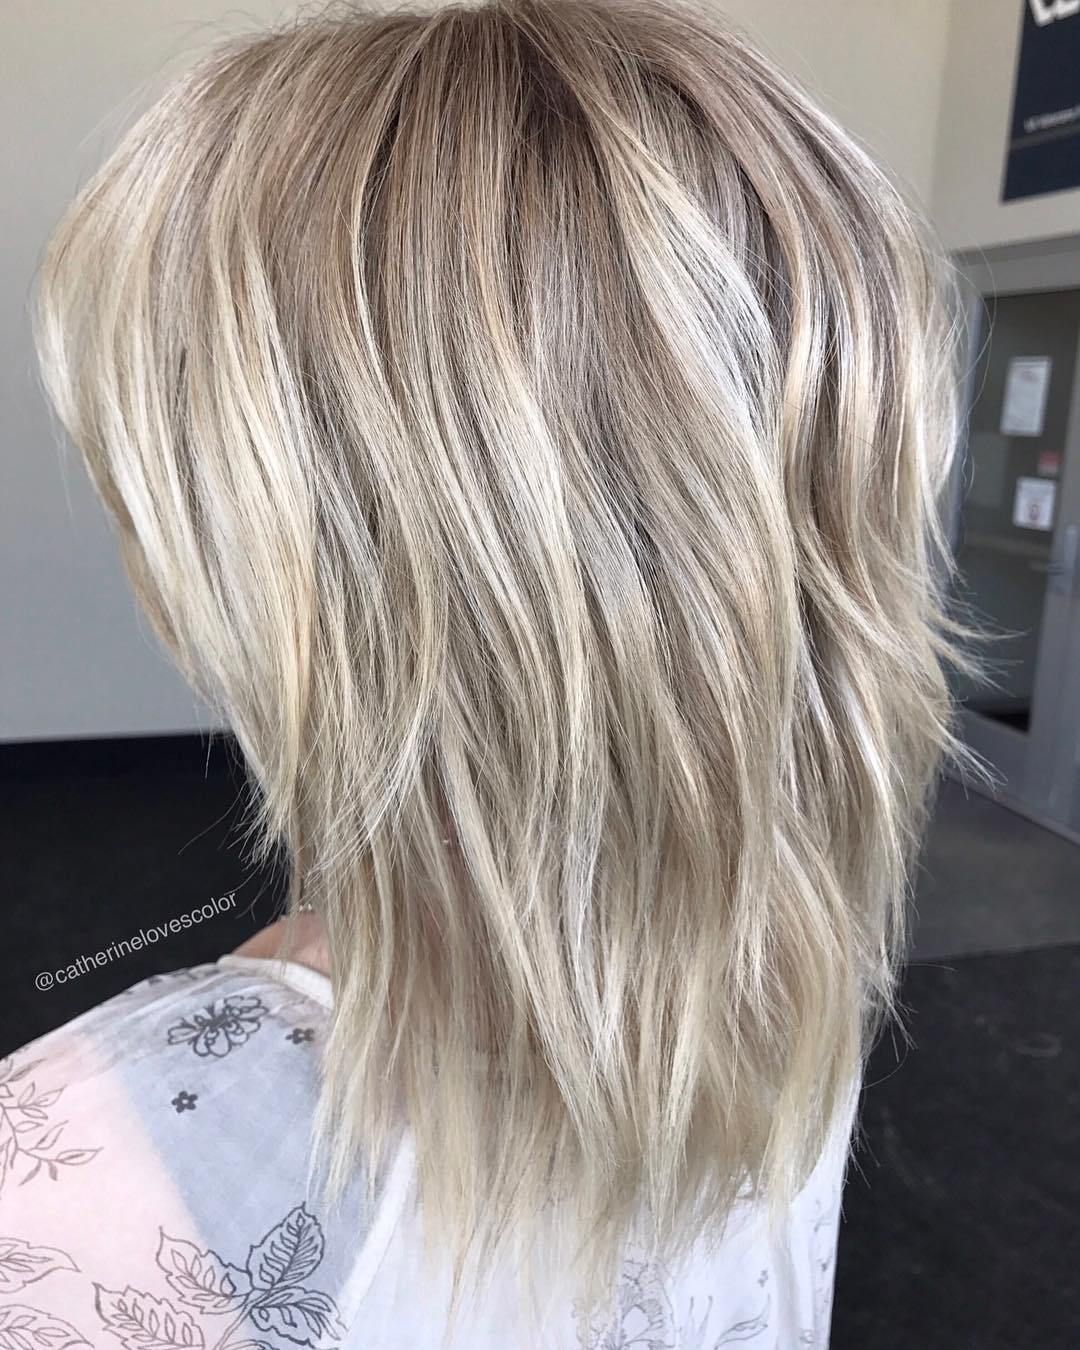 70 Perfect Medium Length Hairstyles For Thin Hair In 2019 Hair Styles Medium Length Hair Styles Medium Shag Haircuts